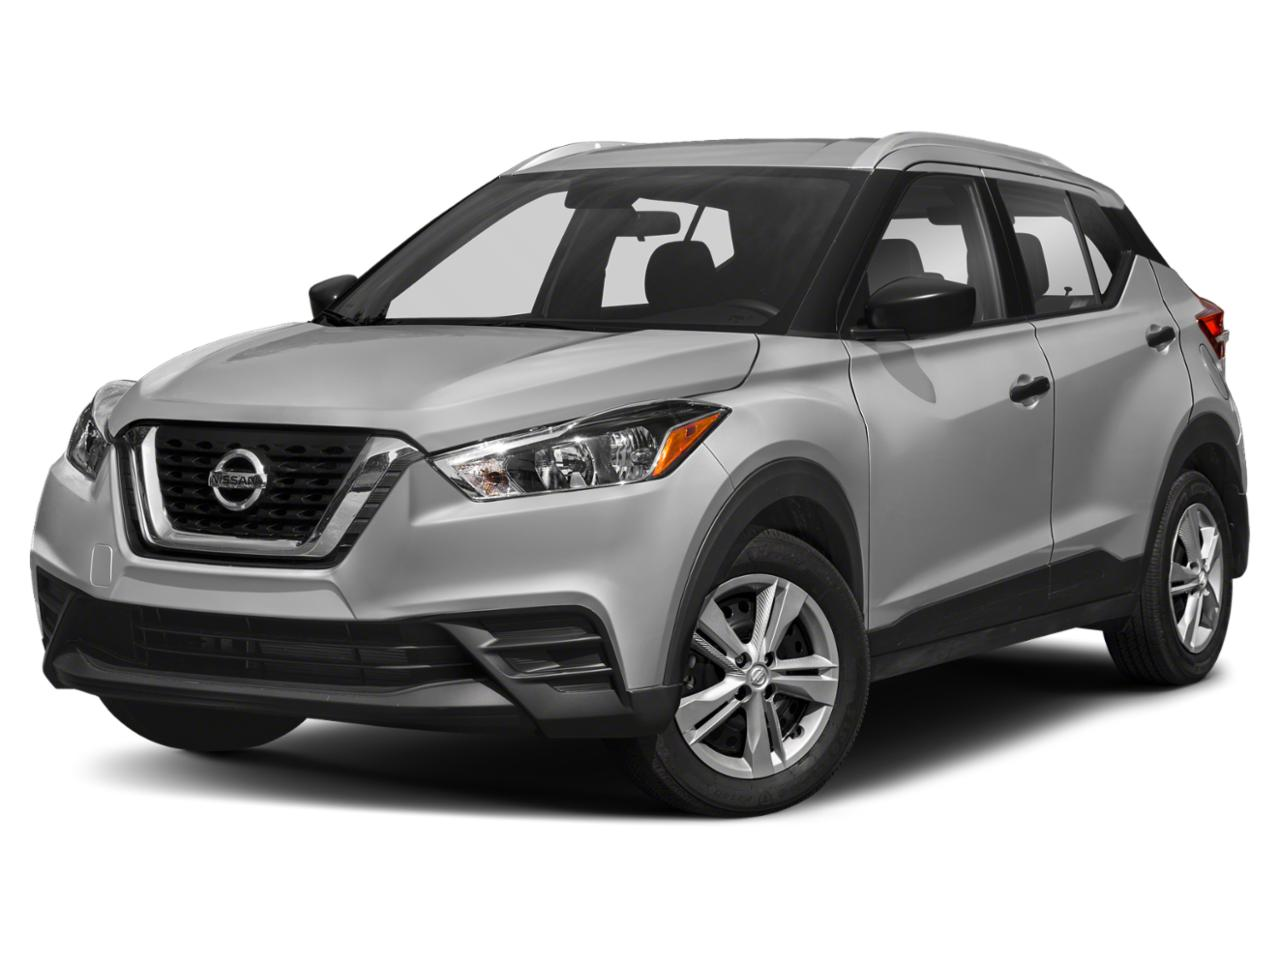 2019 Nissan Kicks Vehicle Photo in Portland, OR 97225